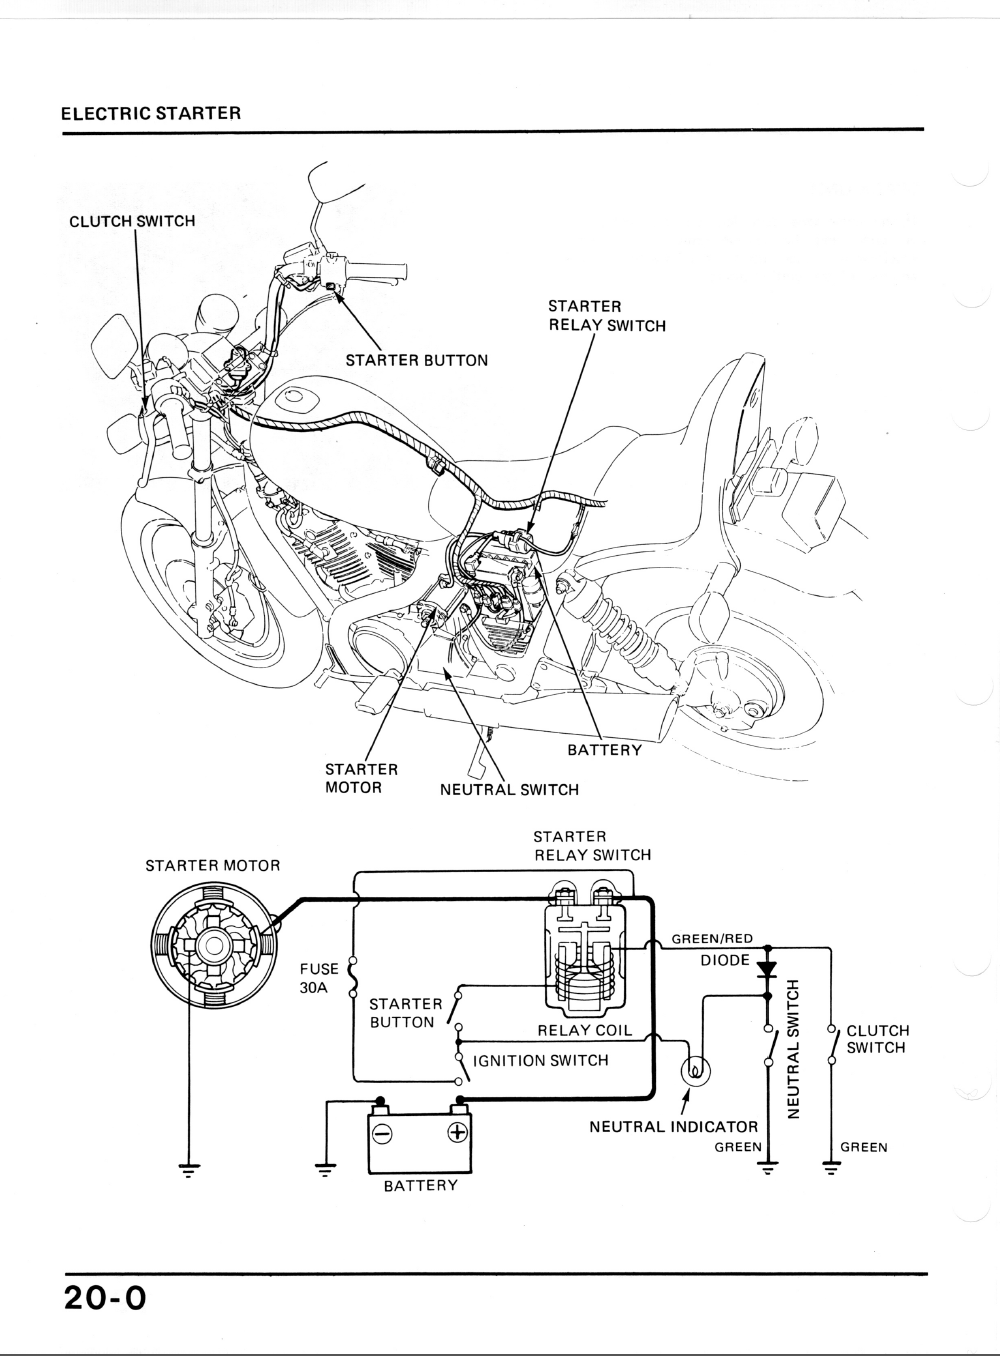 medium resolution of 1984 honda shadow 700 wiring diagram simple wiring diagram rh 14 mara cujas de 1985 honda shadow vt700 wiring diagram 1985 honda vt700 bobber